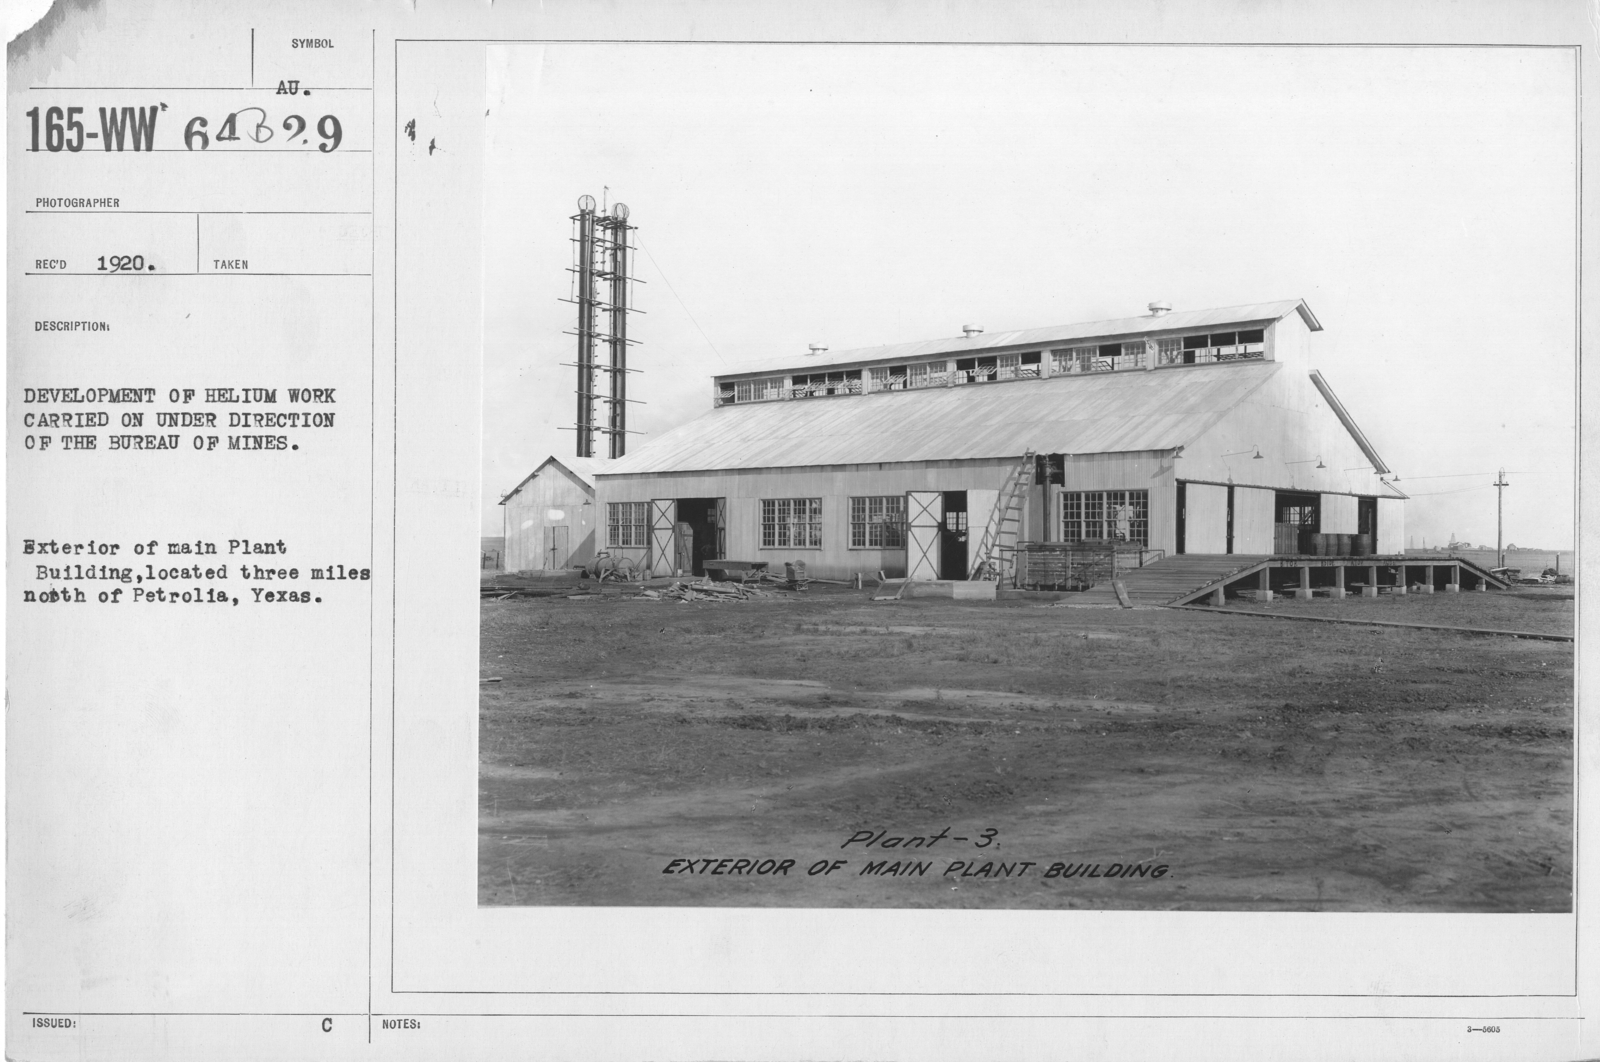 Balloons - Helium Plants - Development of helium work carried on under direction of the Bureau of Mines. Exterior of main Plant Building, located three miles north of Petrolia, Texas